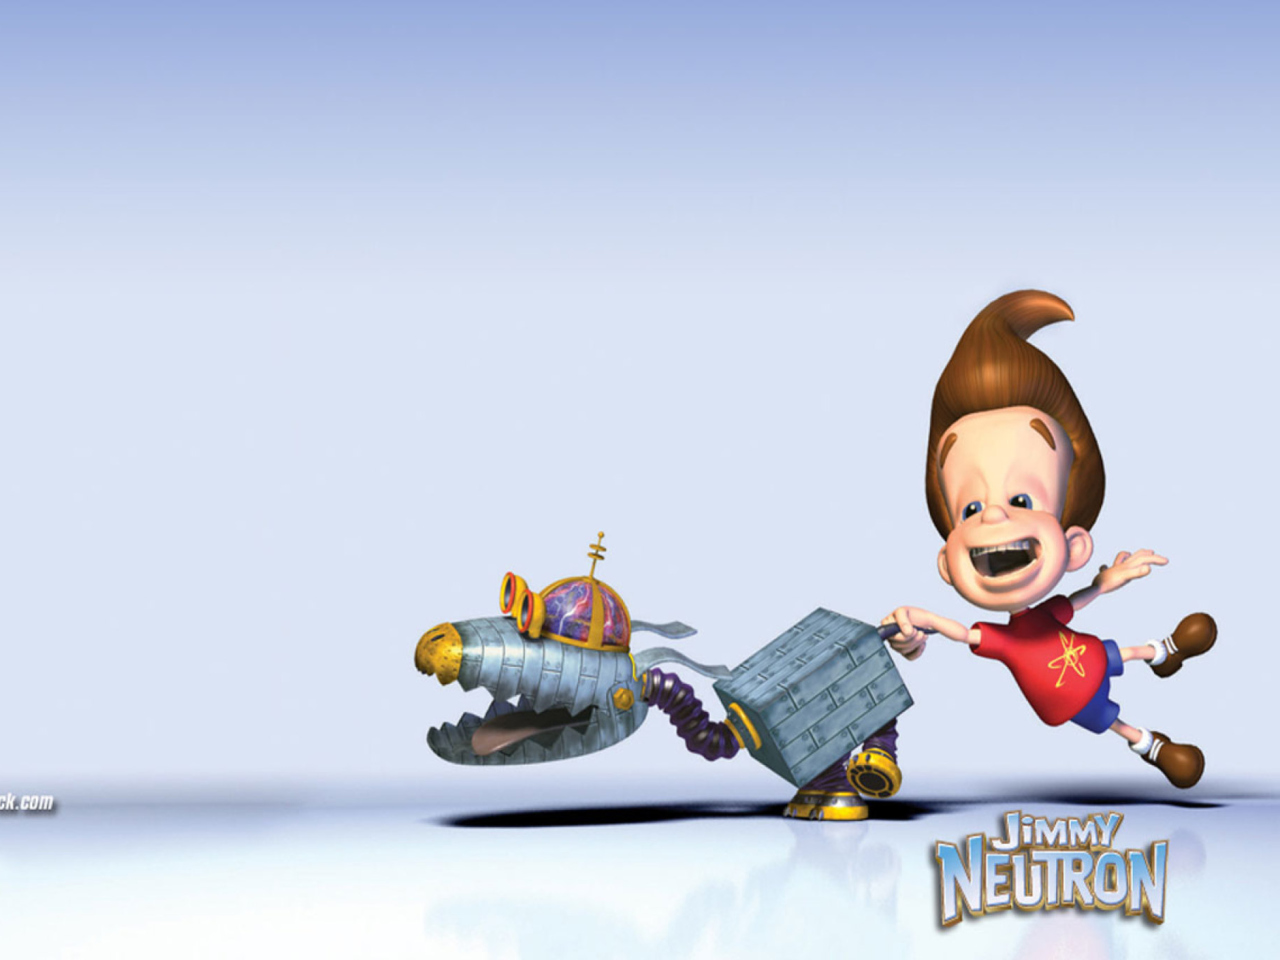 Jimmy neutron cartoon pictures Cached